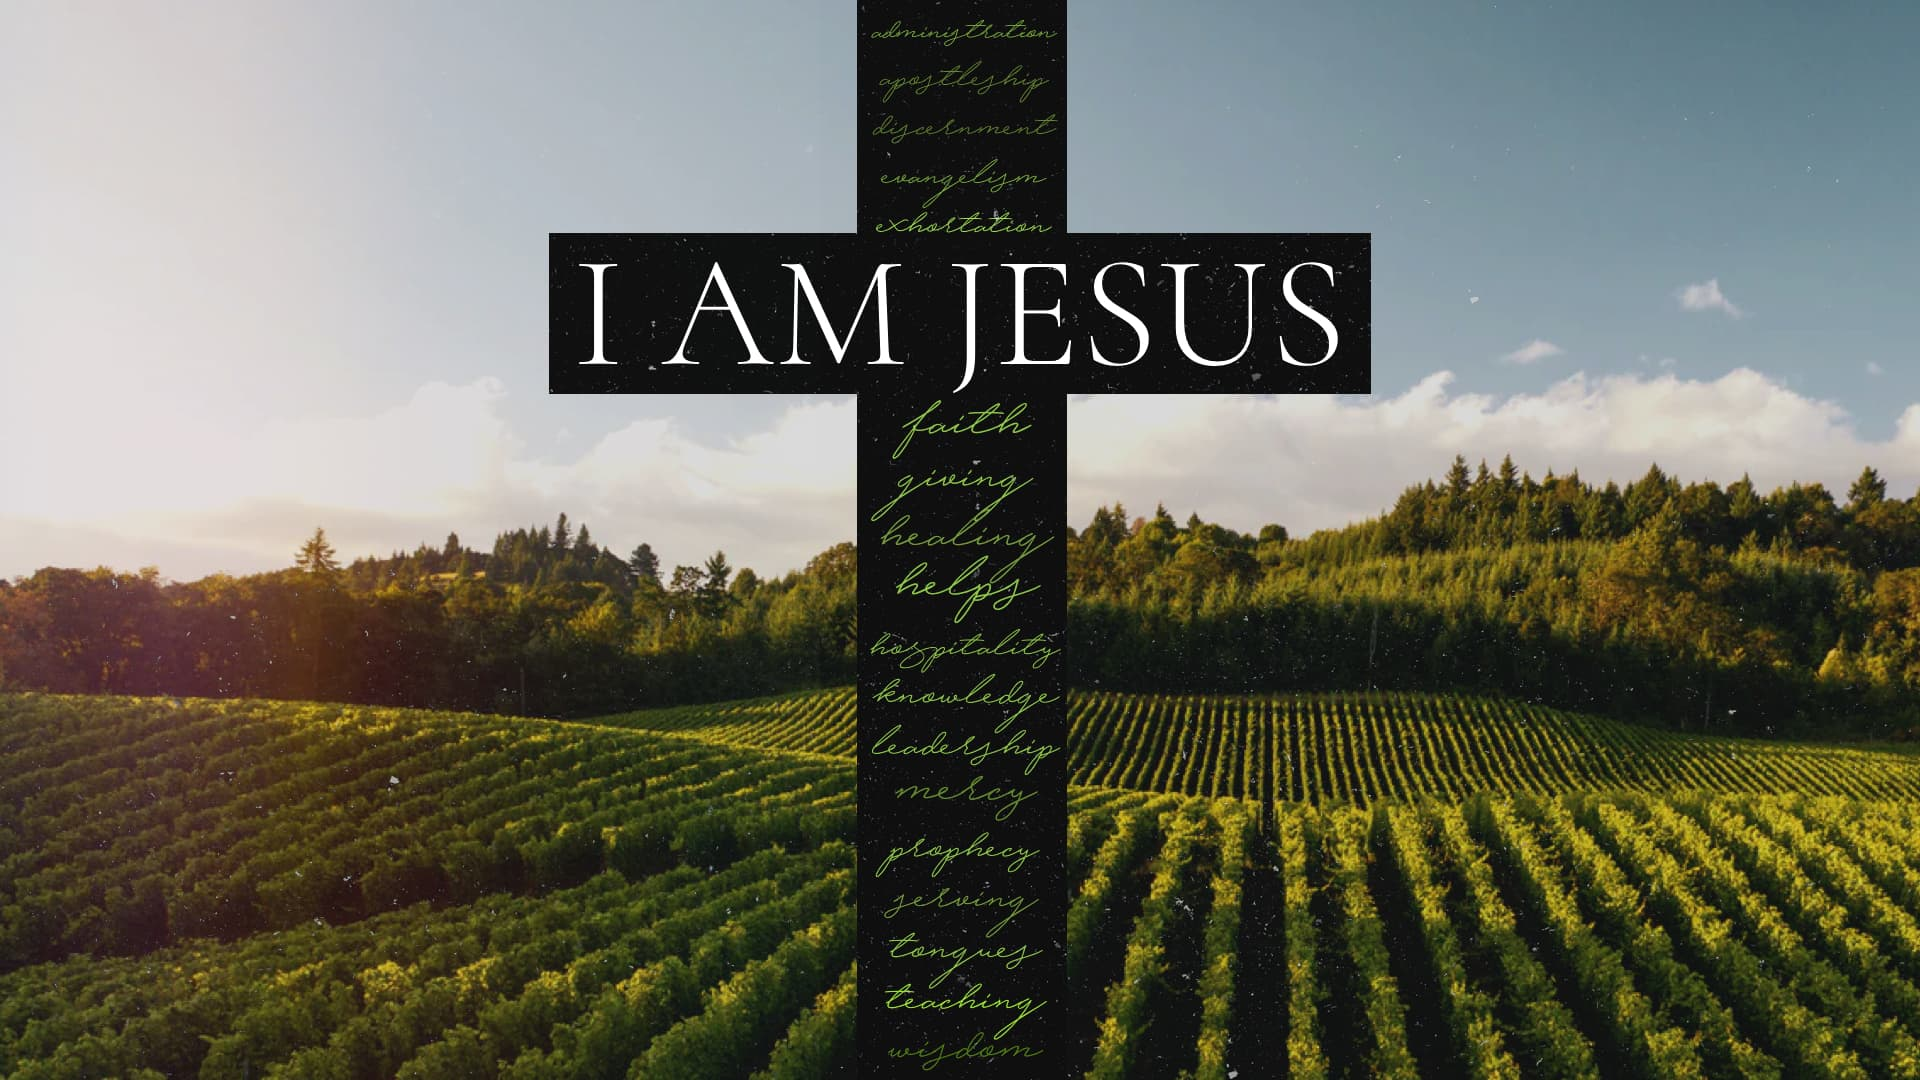 I Am Jesus: I Am the True Vine